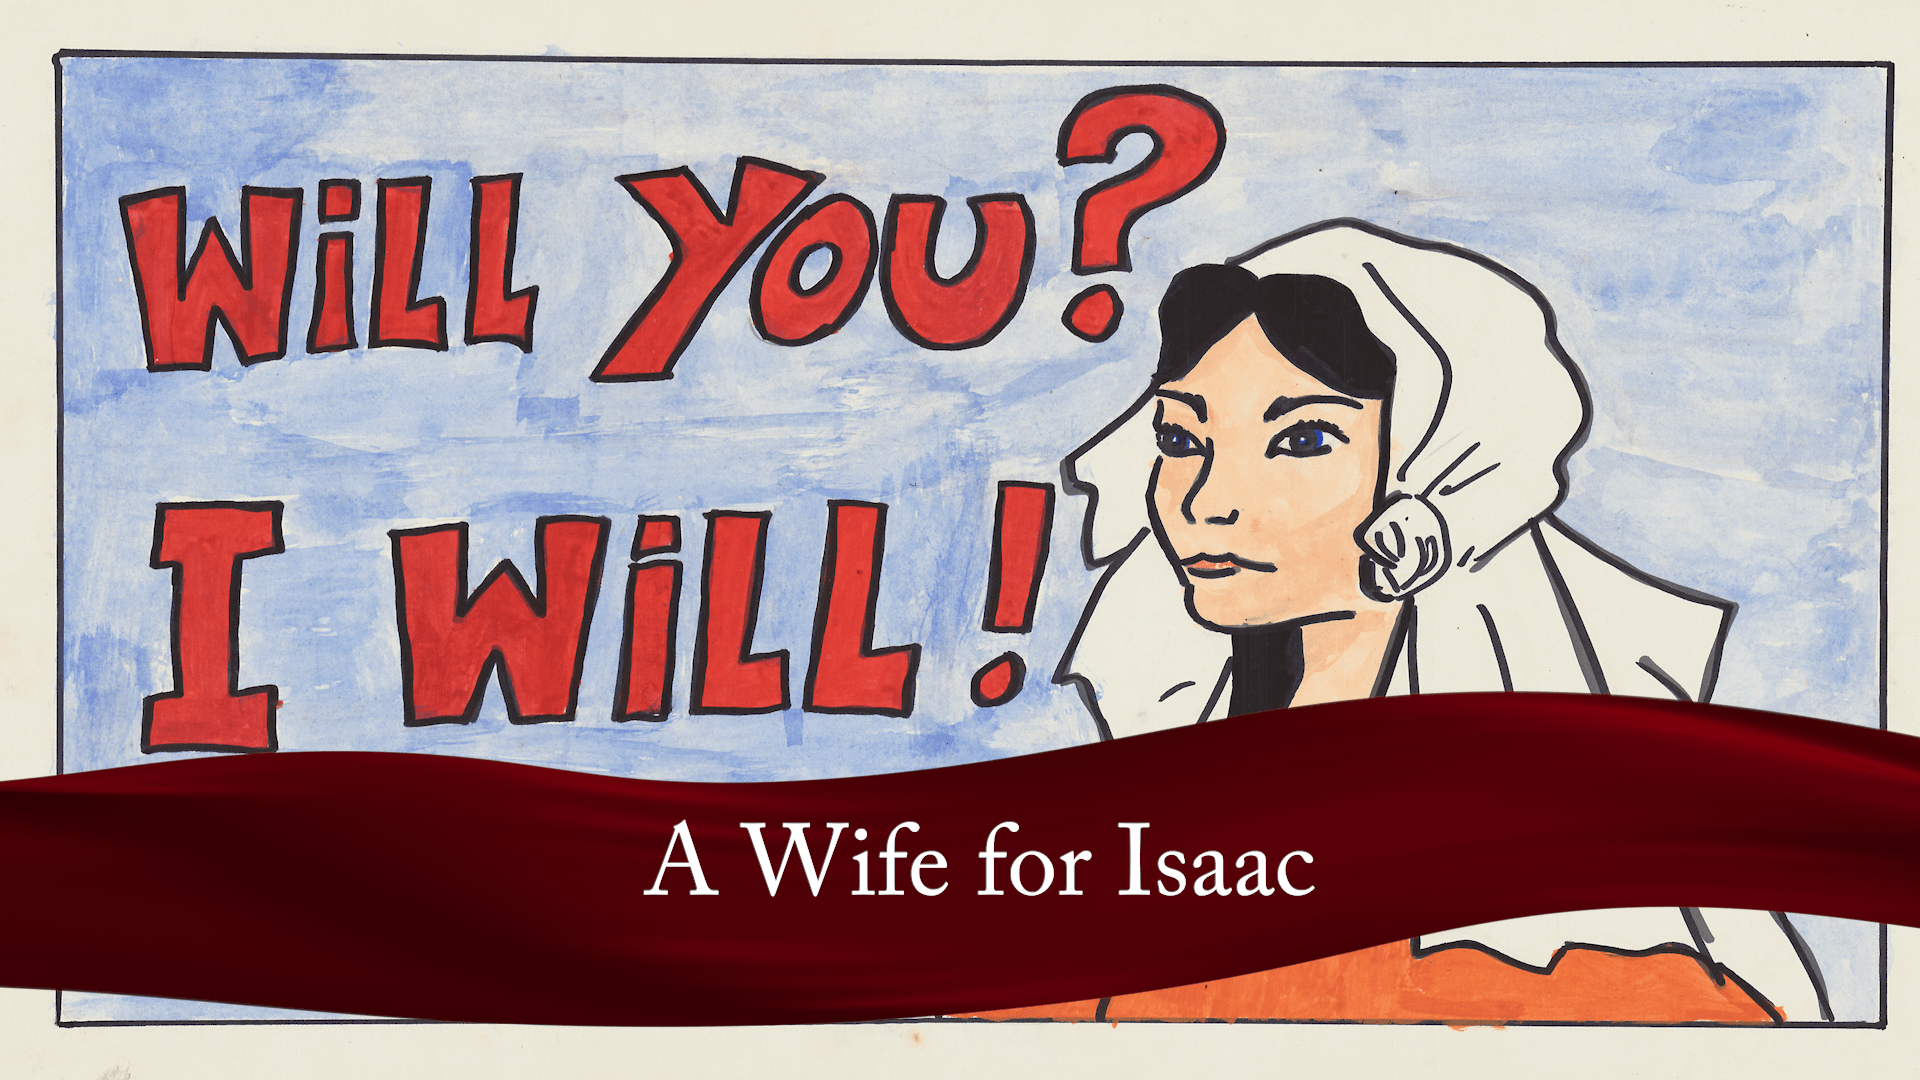 A wife for Isaac